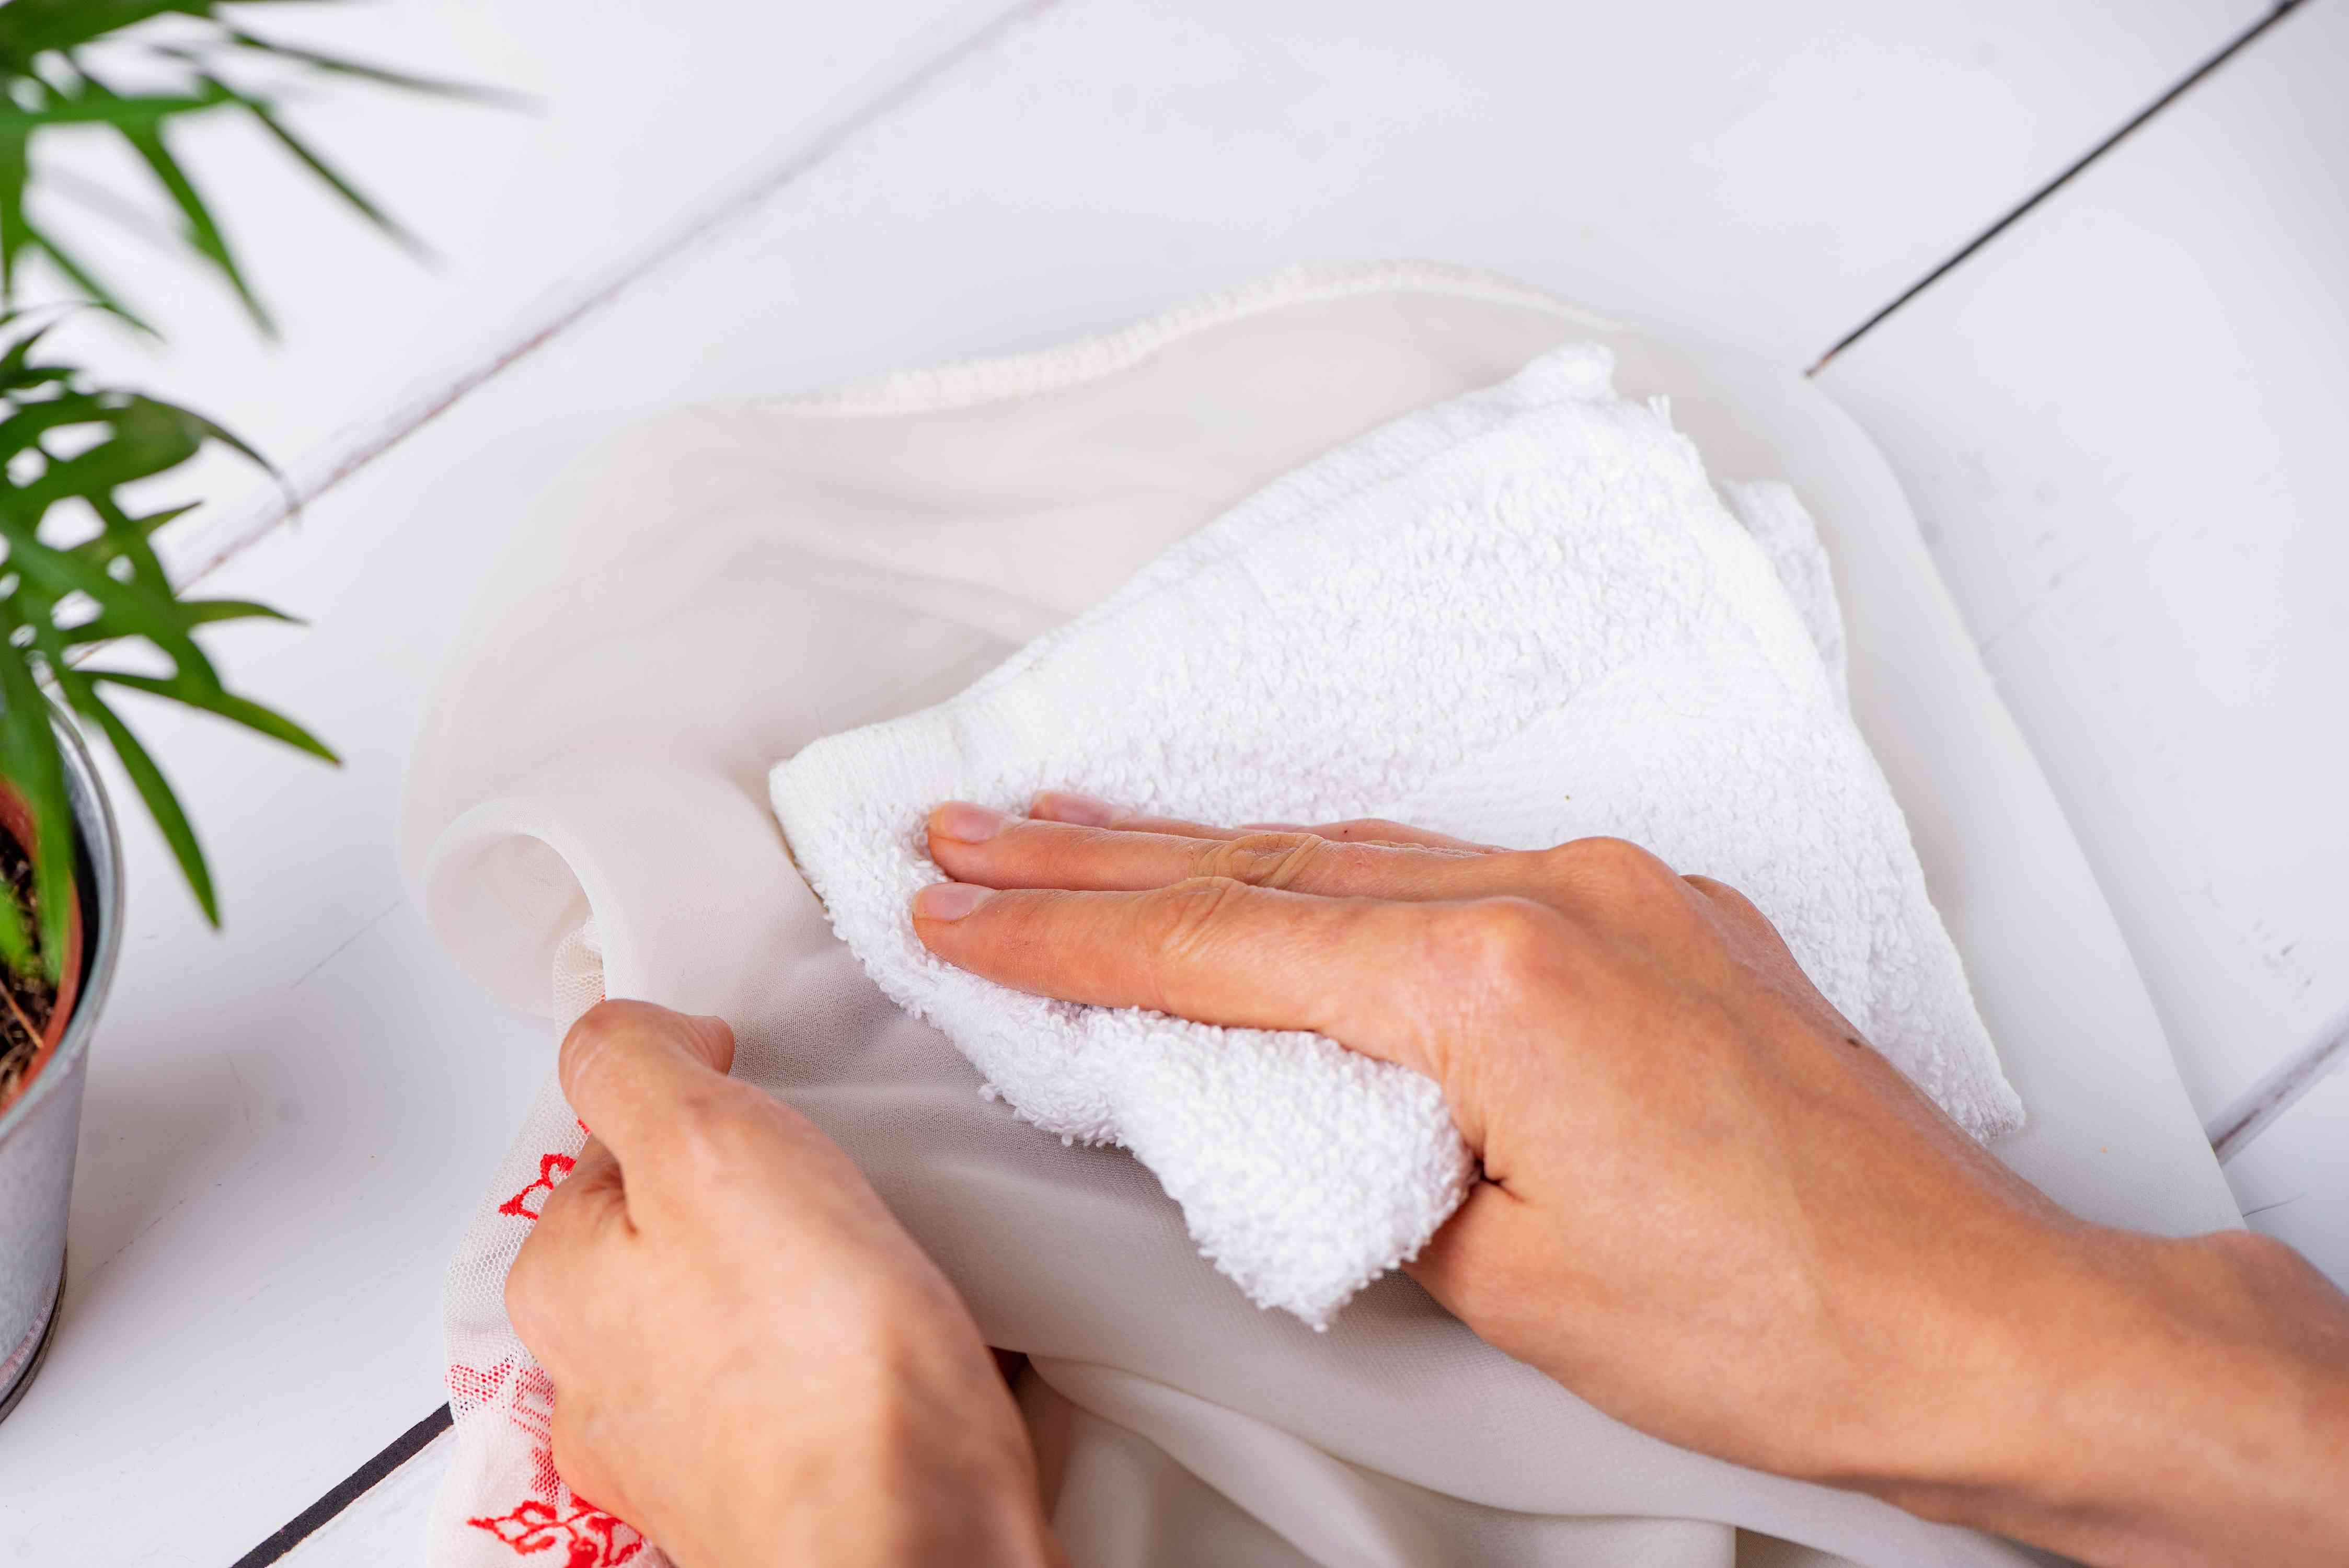 blotting a dry clean only garment